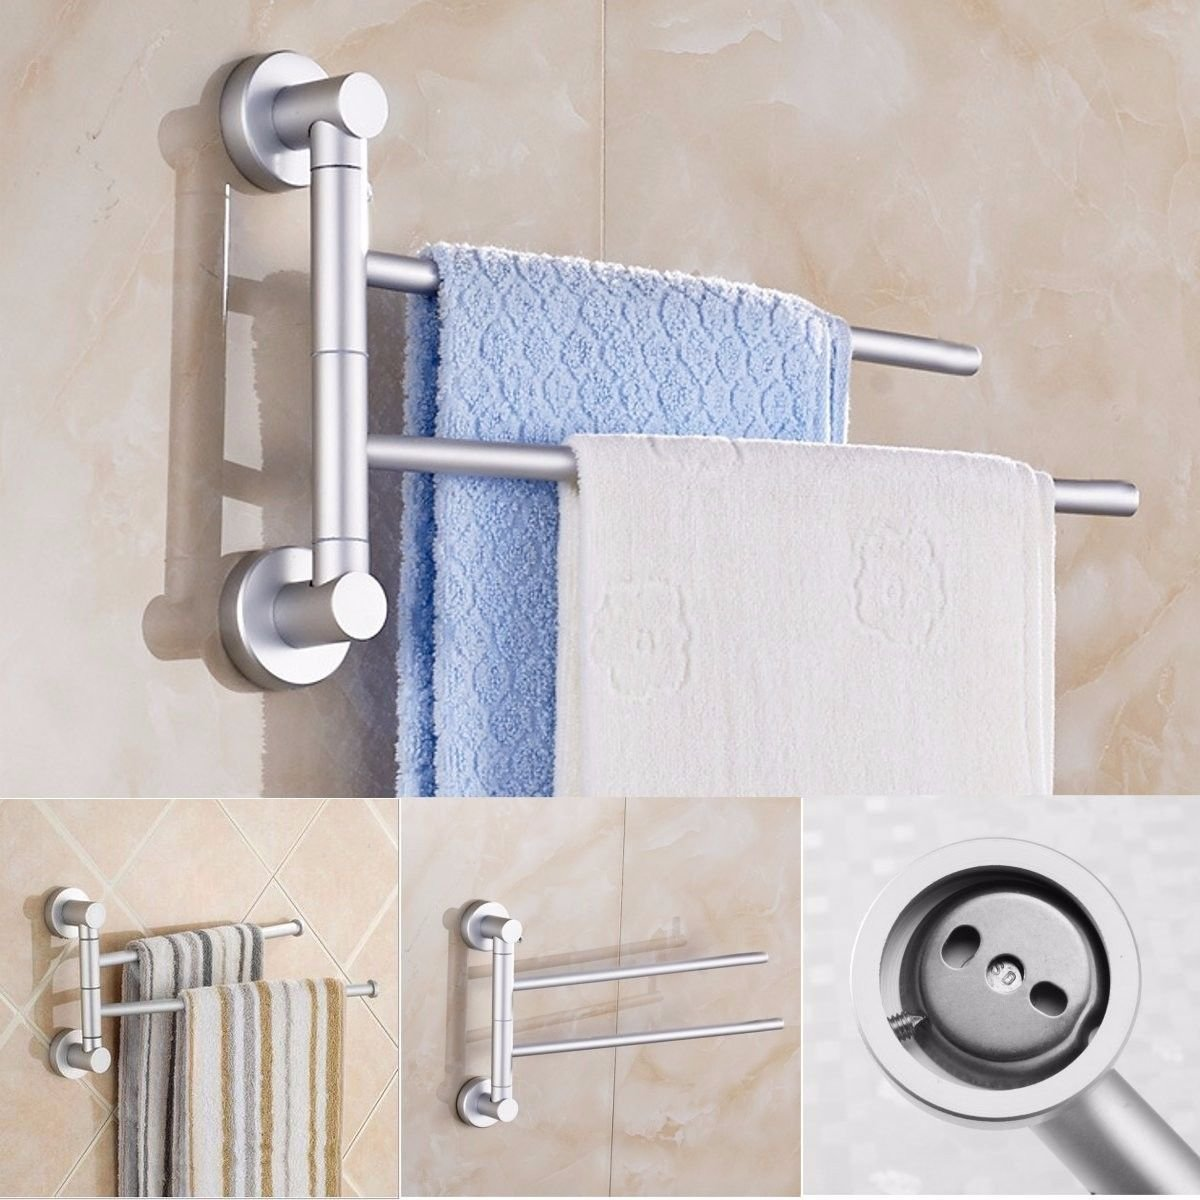 Agordo Aluminum 360В° Bathroom Kitchen Wall Mounted Towel Rack Storage Holder Rail Shelf